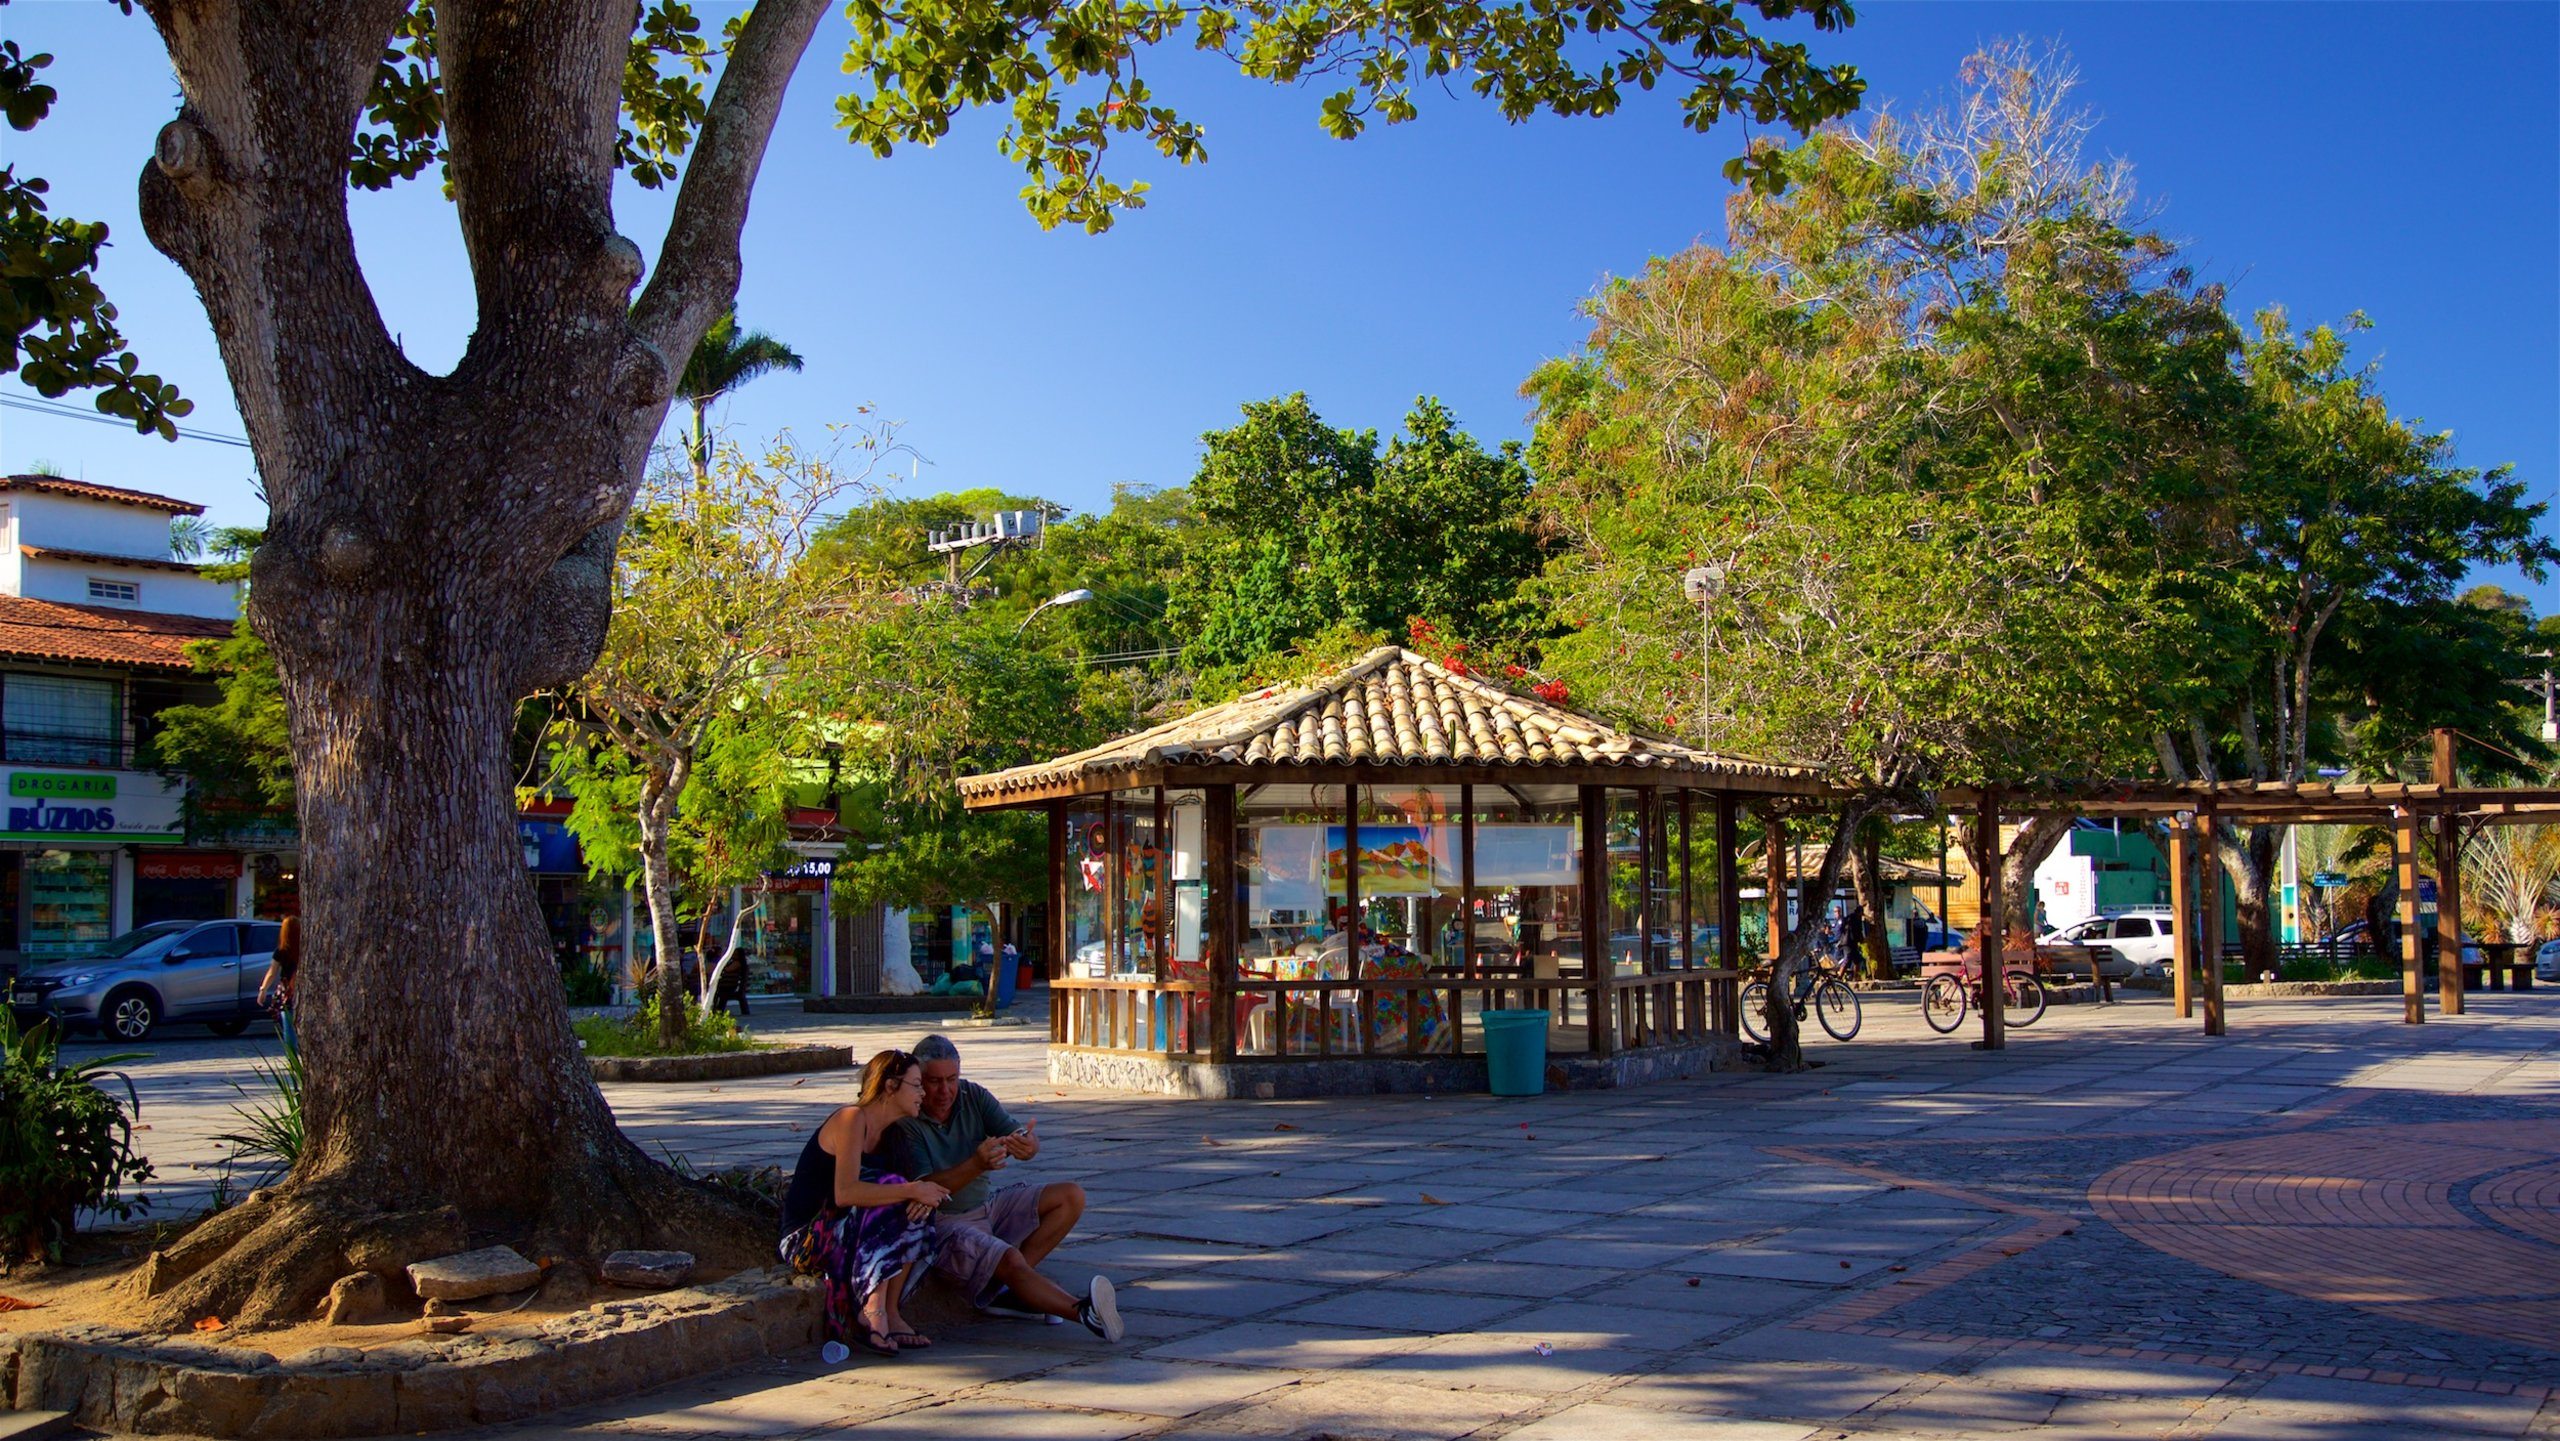 Browse items for sale at the weekend craft fair and attend events and activities in the main plaza of Búzios.